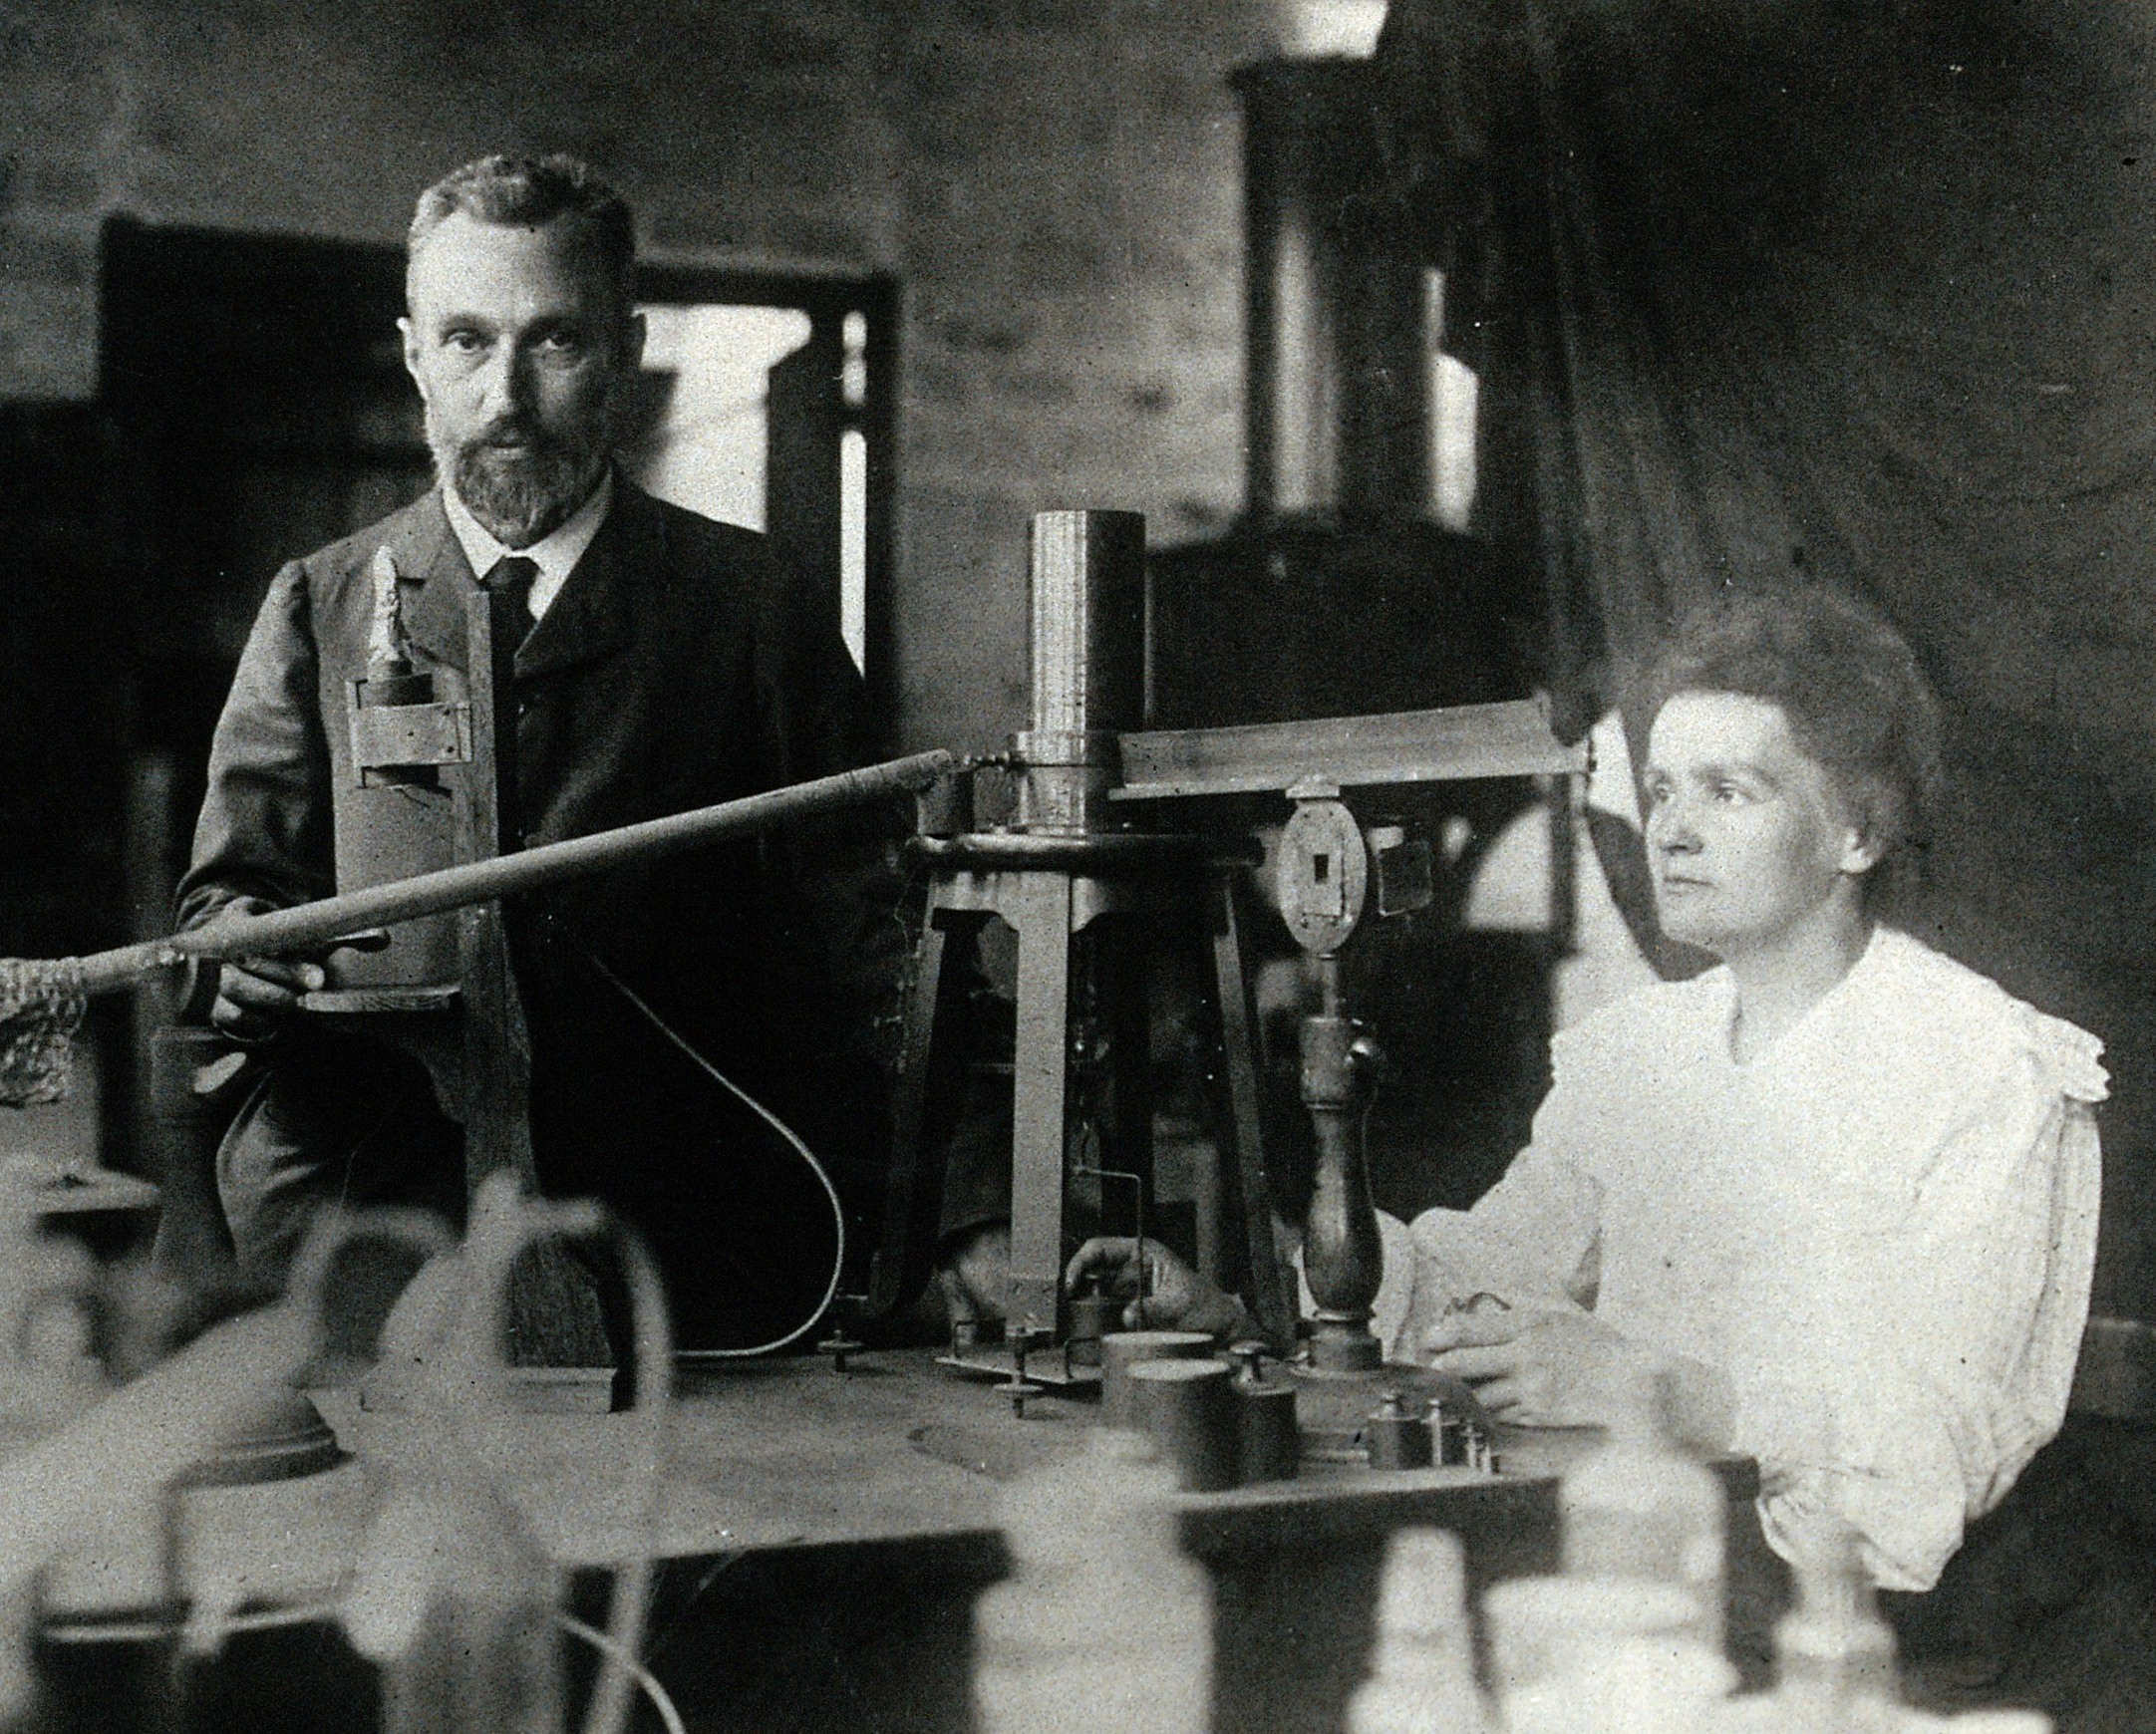 Fig. 1 : Pierre (1859-1906) et Marie (1867-1934) Curie. Source : fr.m.wikipedia.org